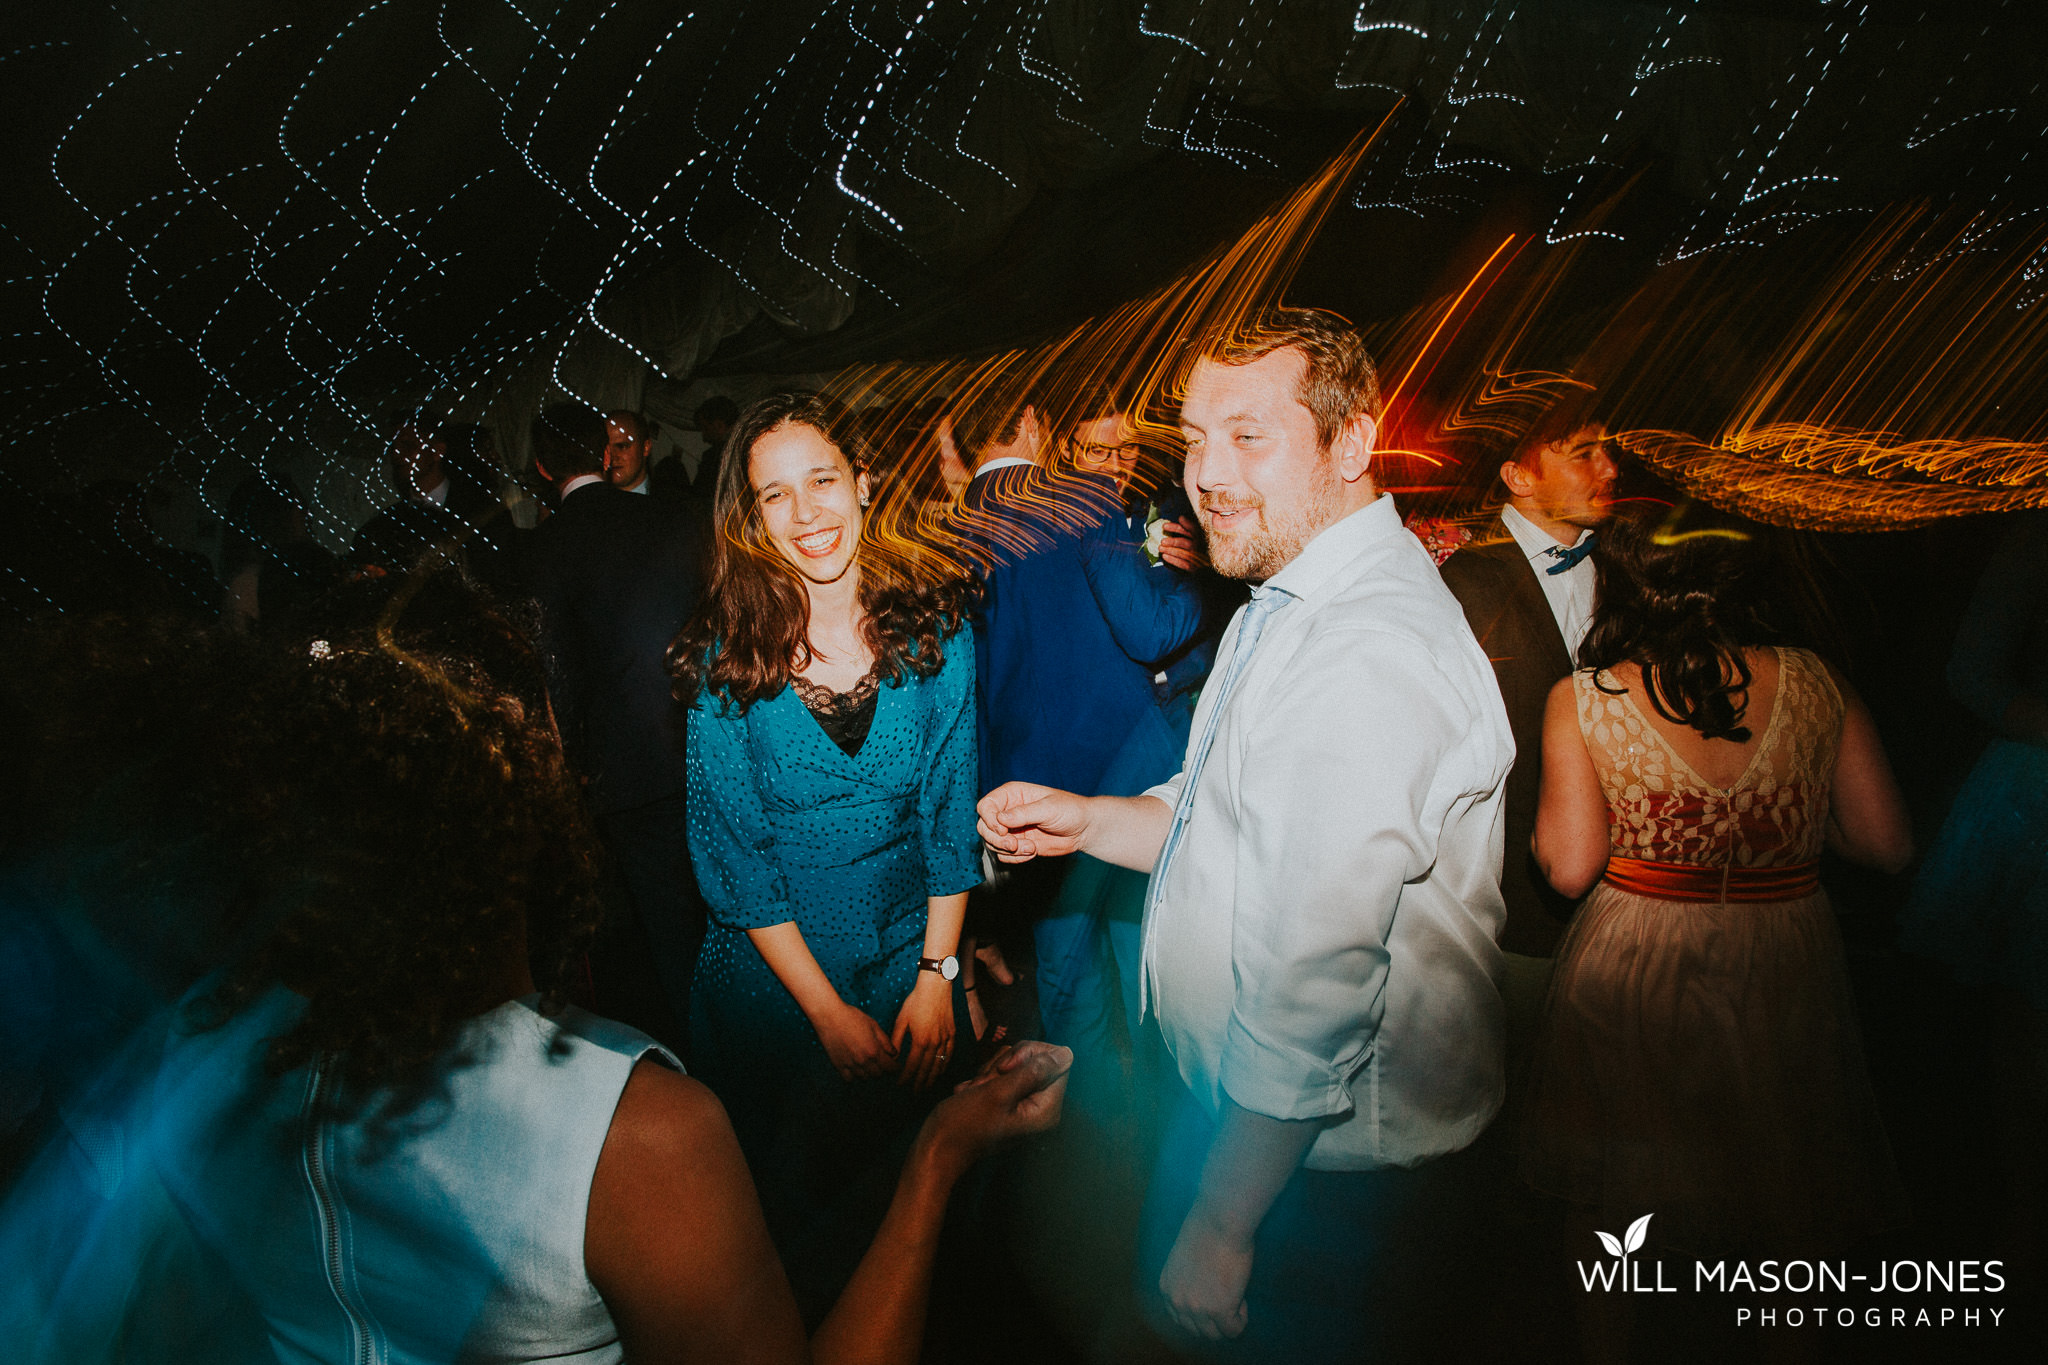 colourful energetic fun dancefloor dancing photography llanerch vineyard wedding cardiff